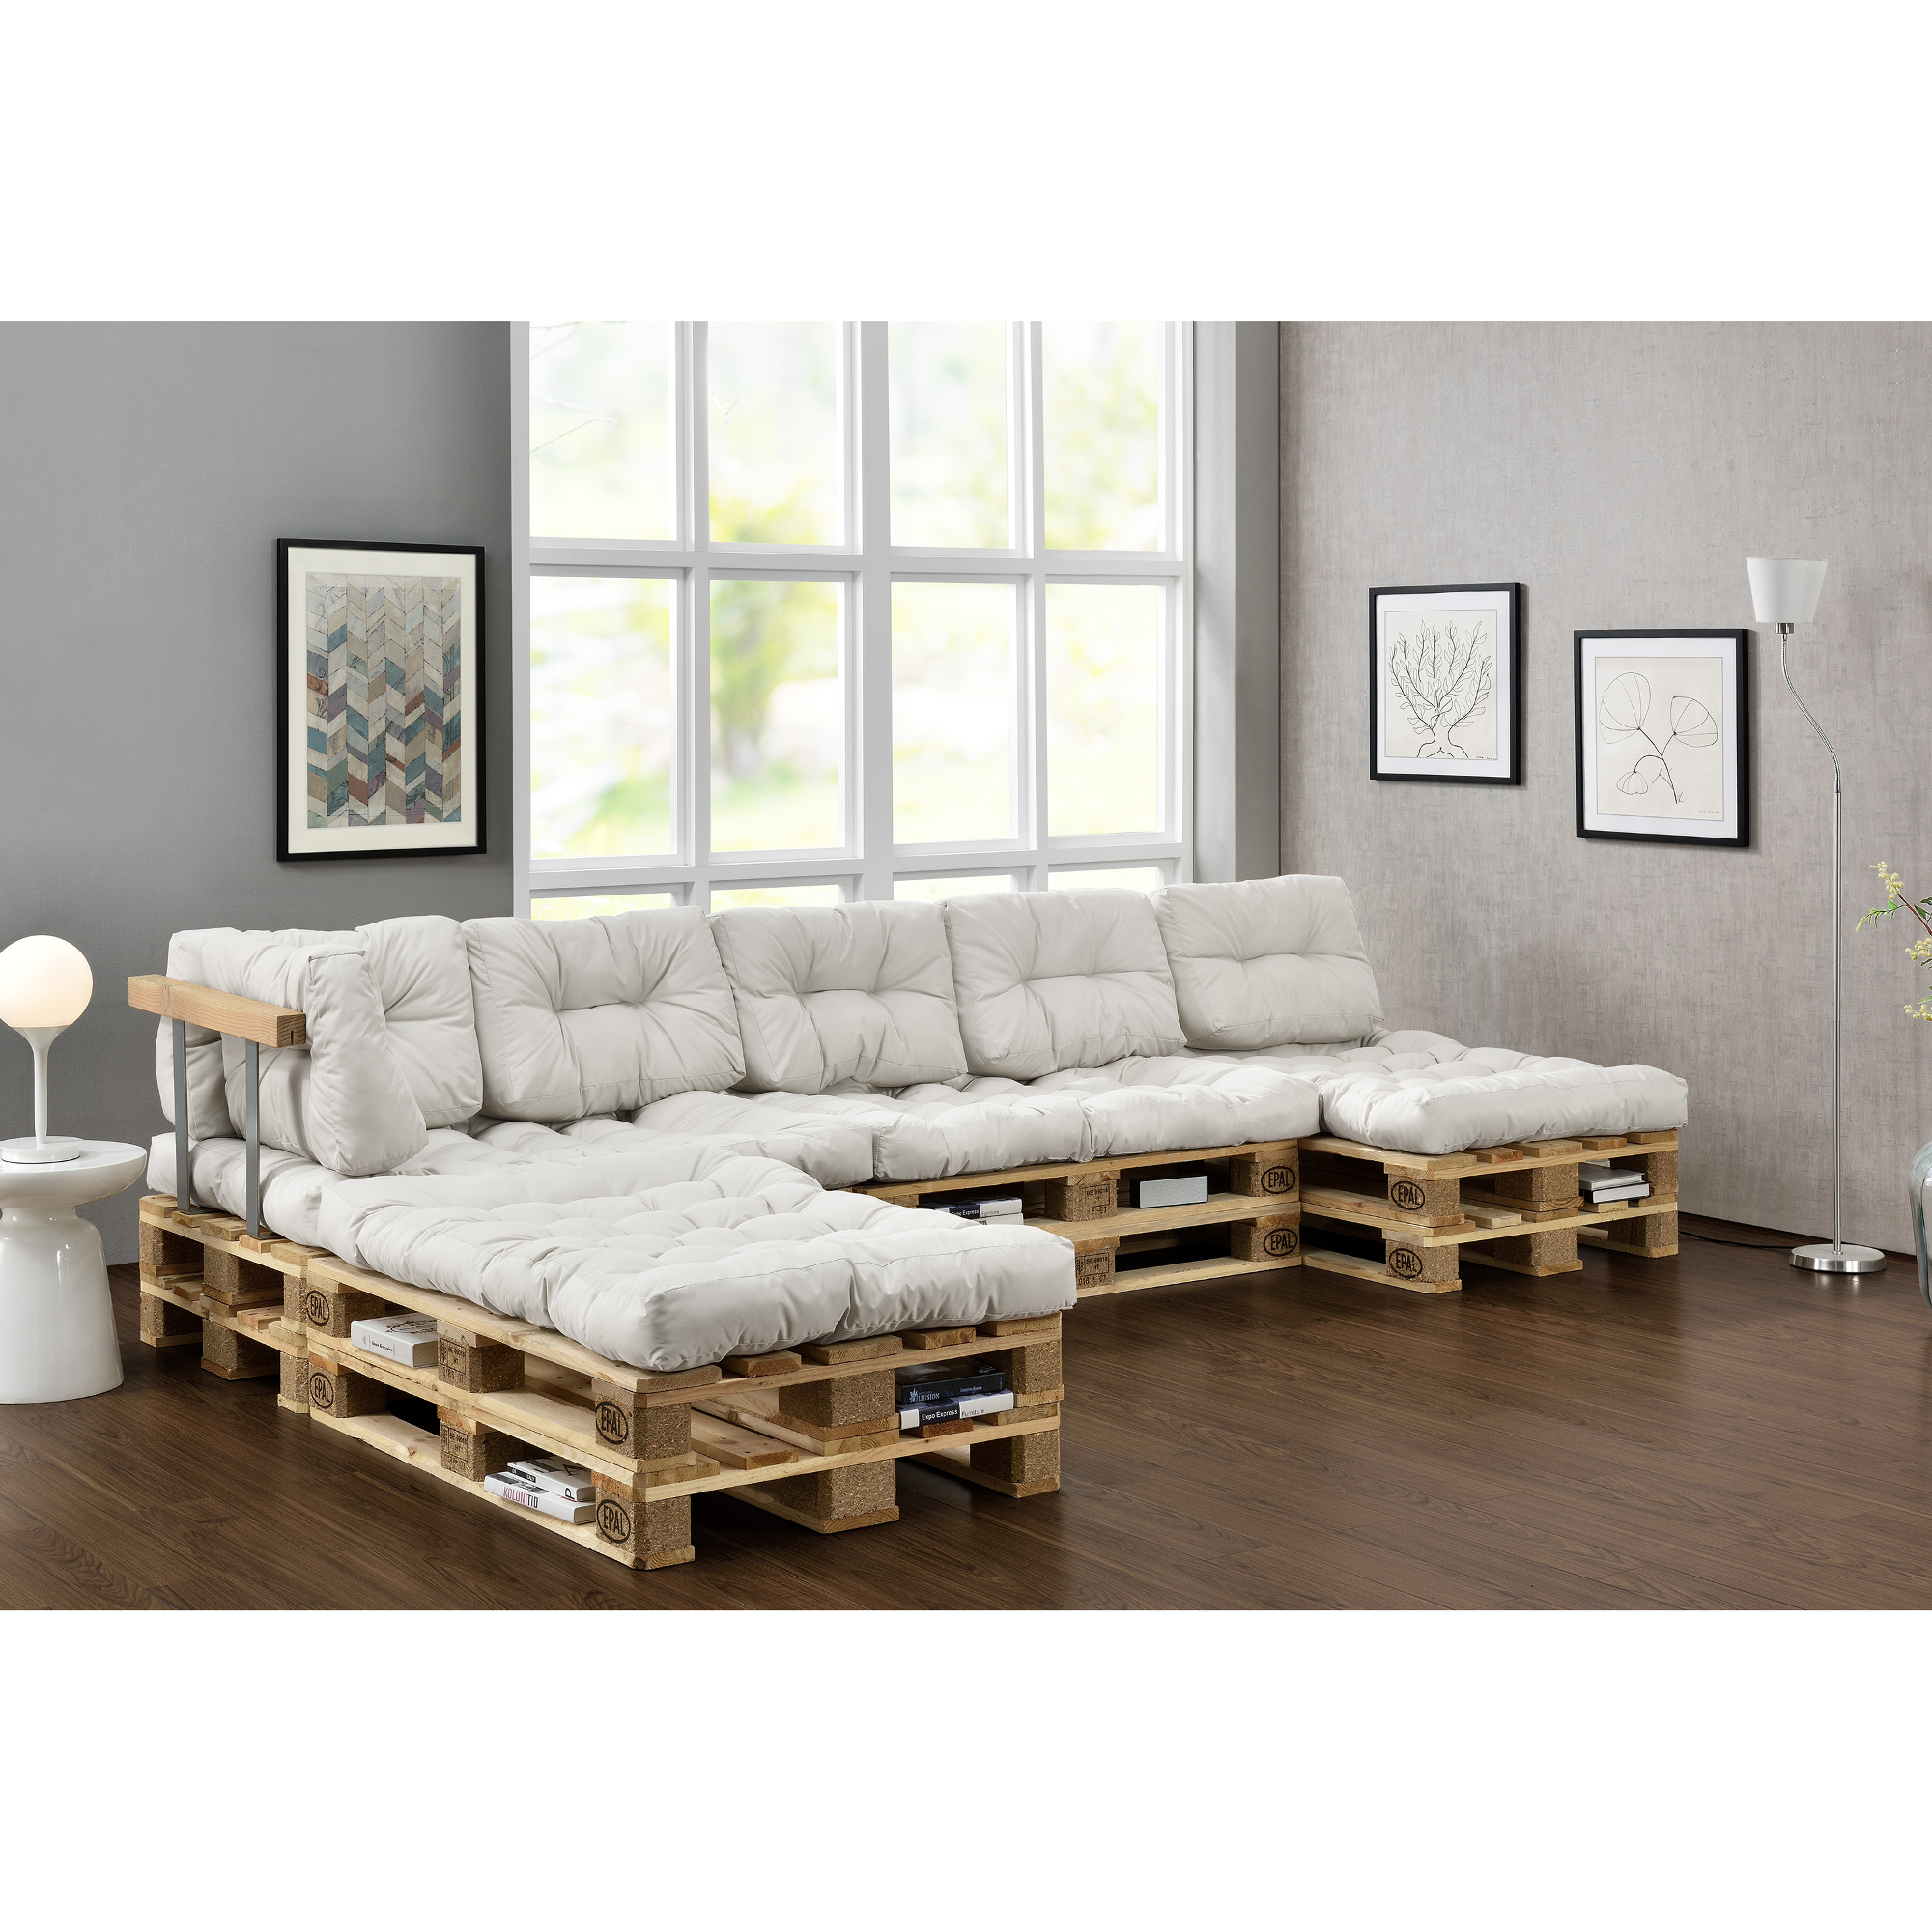 euro palettes canap set blanc int rieur coussin dition de si ge ebay. Black Bedroom Furniture Sets. Home Design Ideas